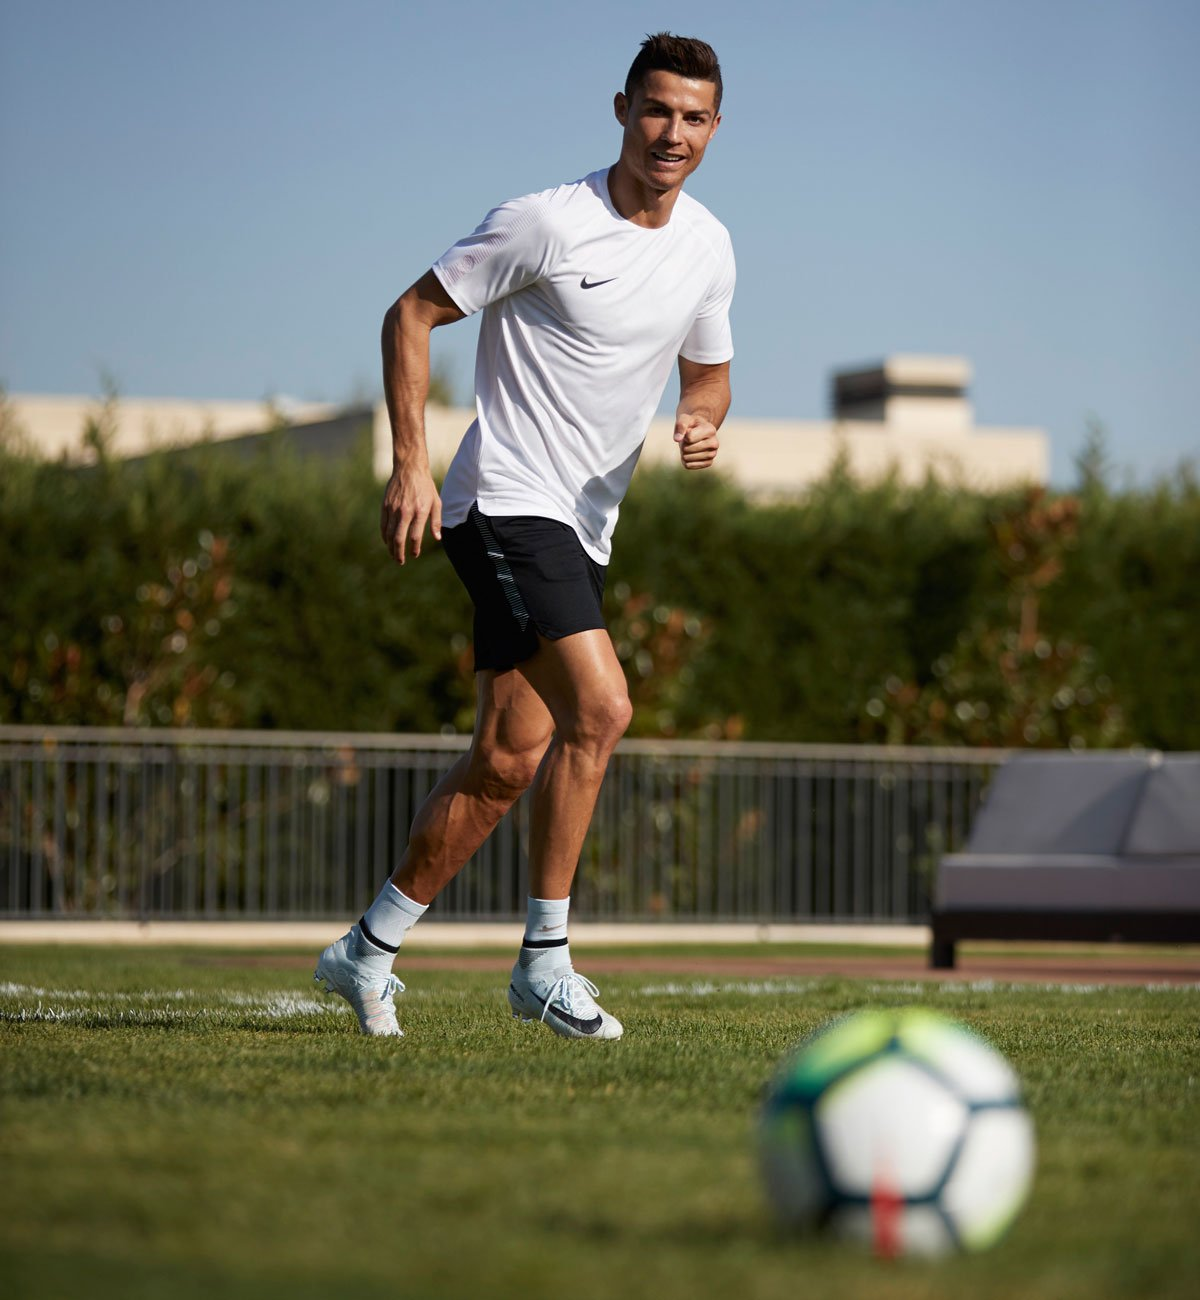 Read my story on @Playerstribune. Find out more: https://t.co/kMPu6WwQKz #Mercurial #CR7 #NikeFootball https://t.co/Hm6Dt18Dku